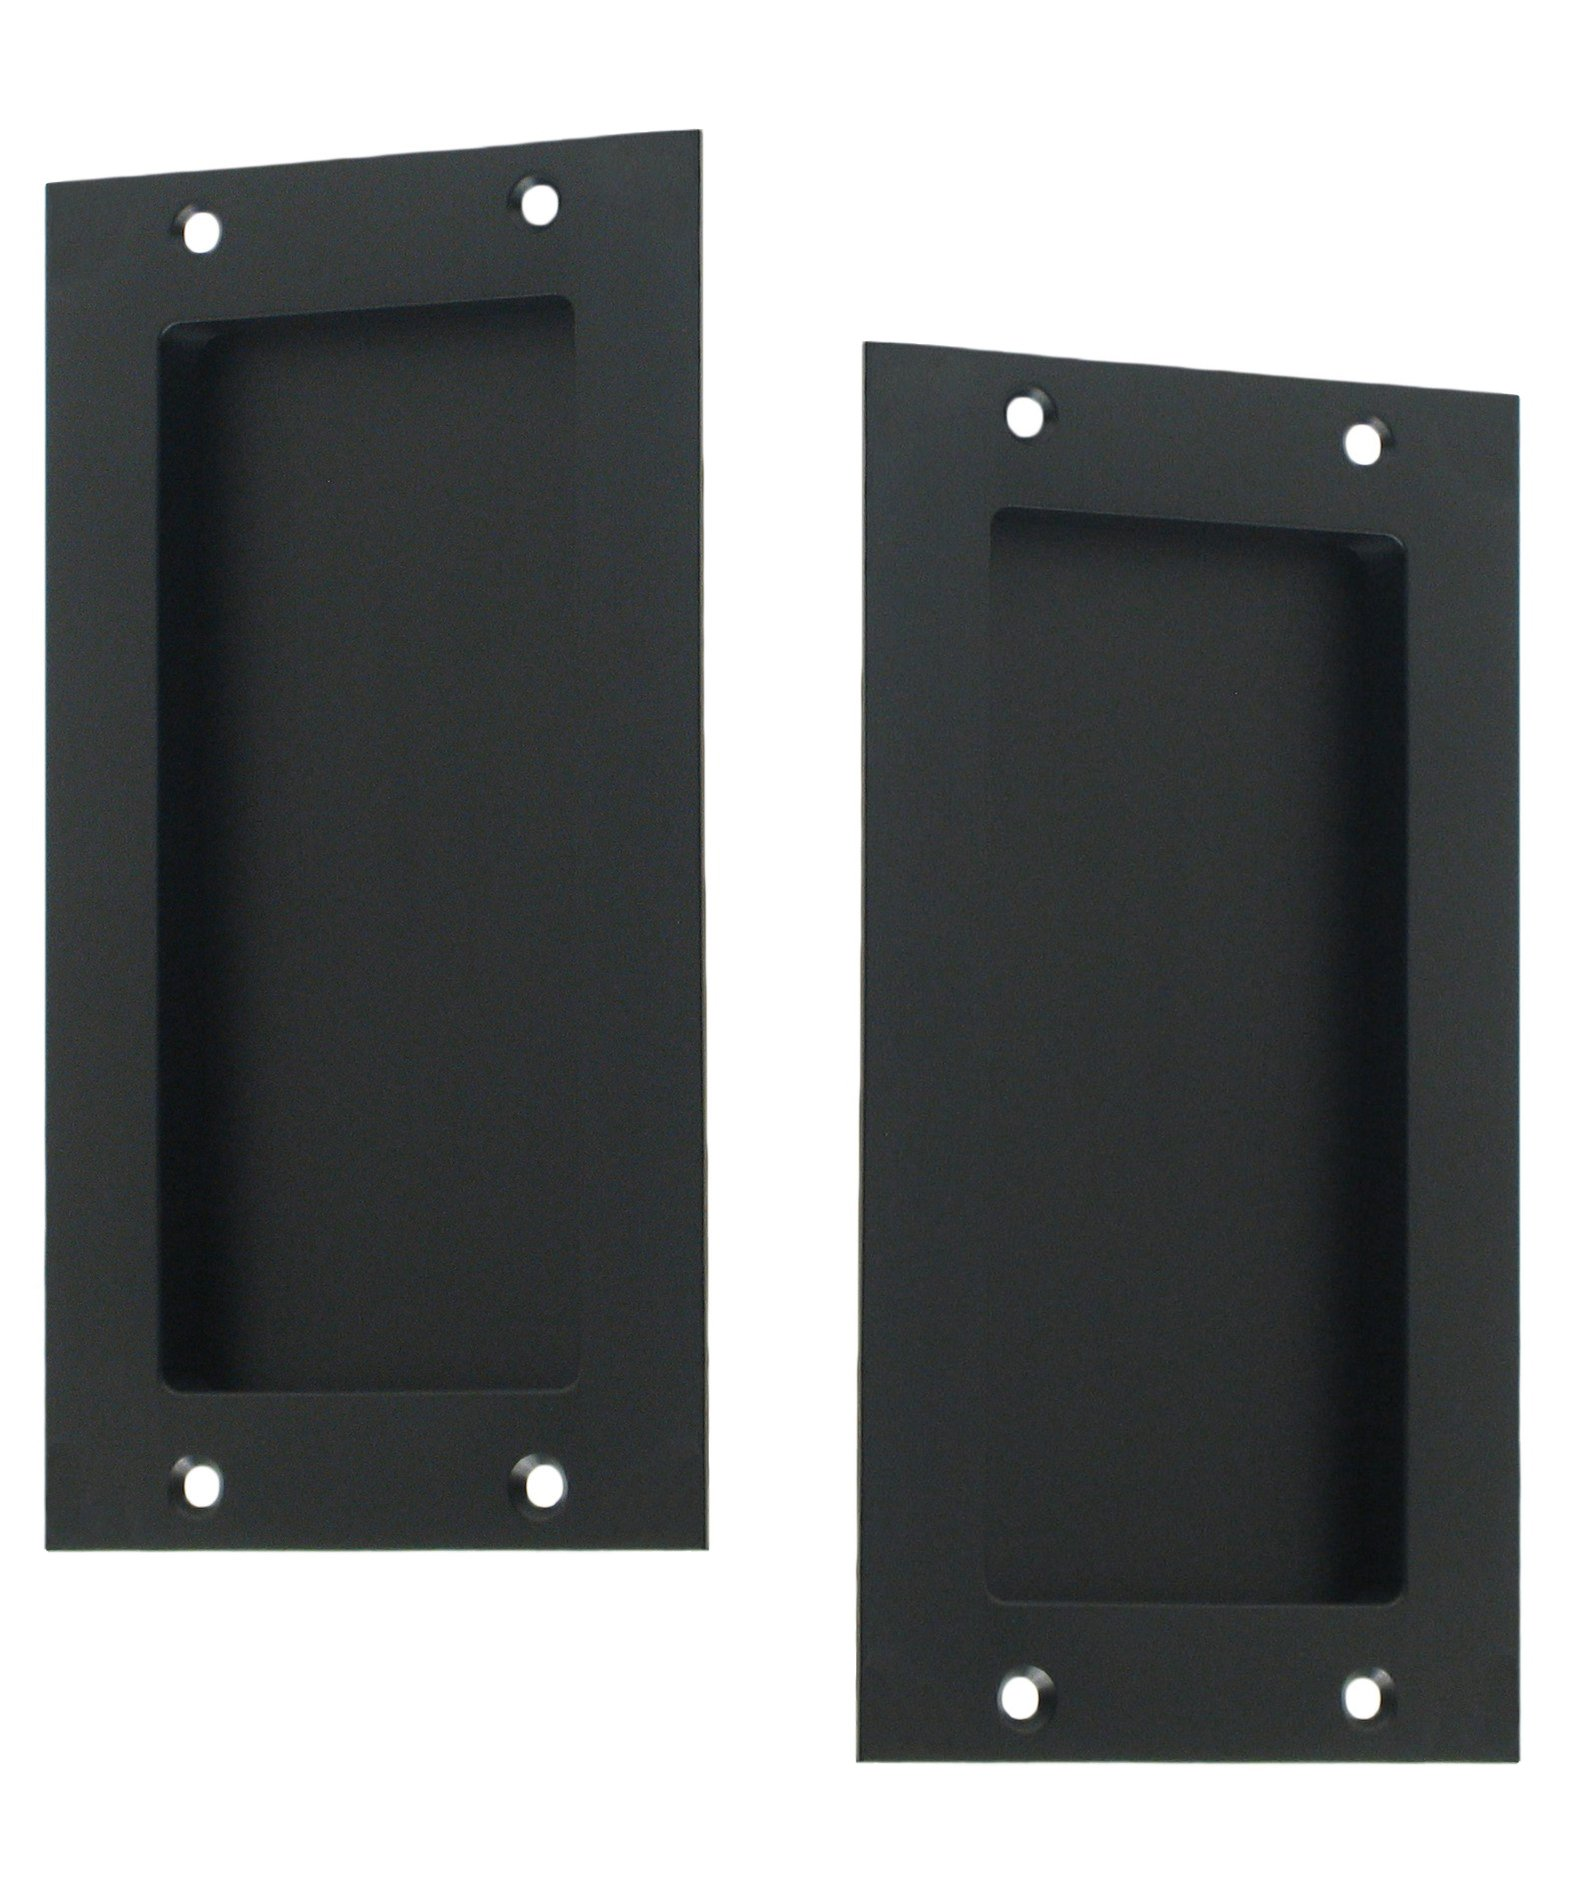 Anacapa by FPL - Solid Brass Modern Pocket Door Hardware in Passage - Hall/Closet Function - Oil Rubbed Bronze